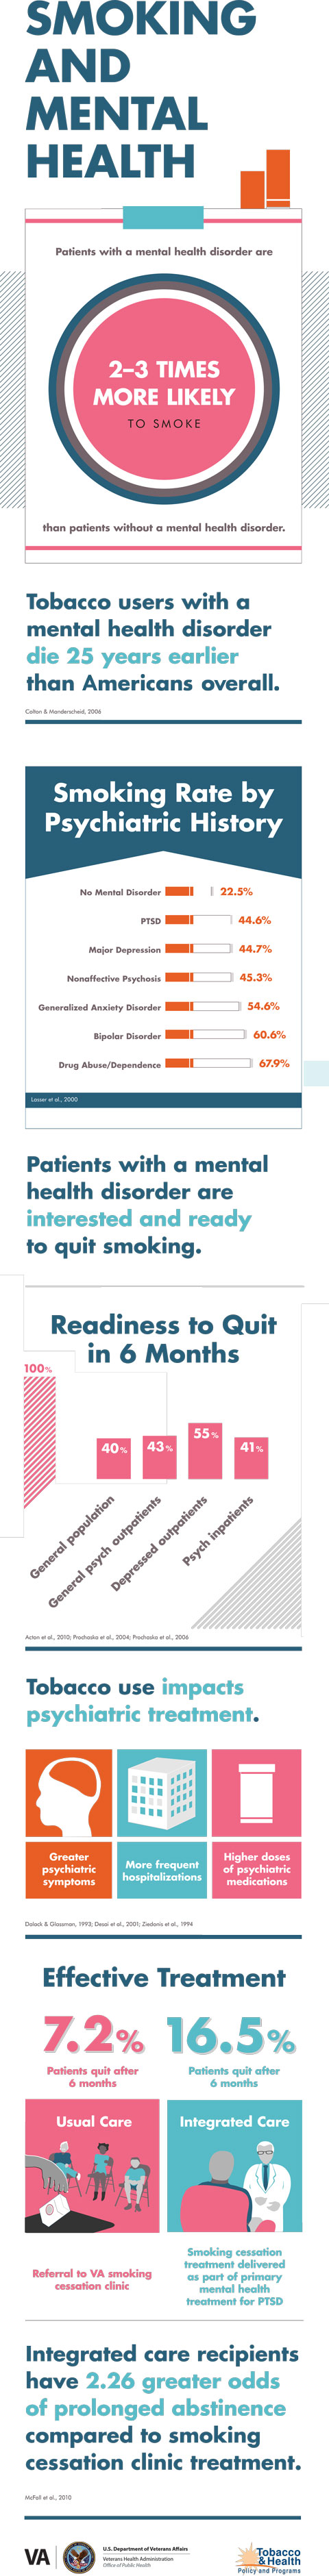 Smoking and mental health infographic